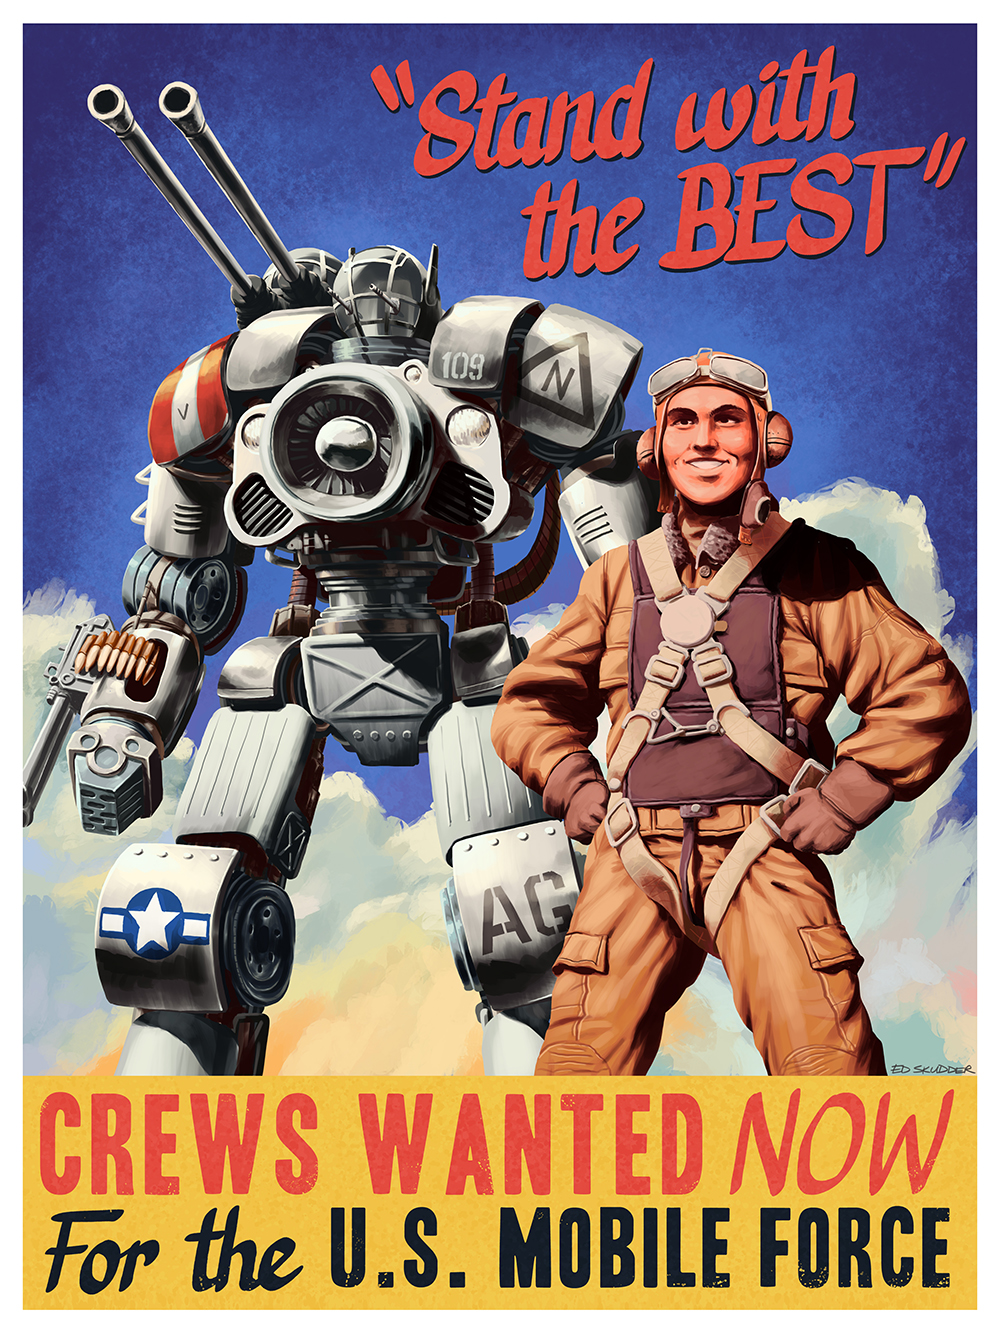 """Mobile Force Propaganda Poster"" by Ed Skudder"